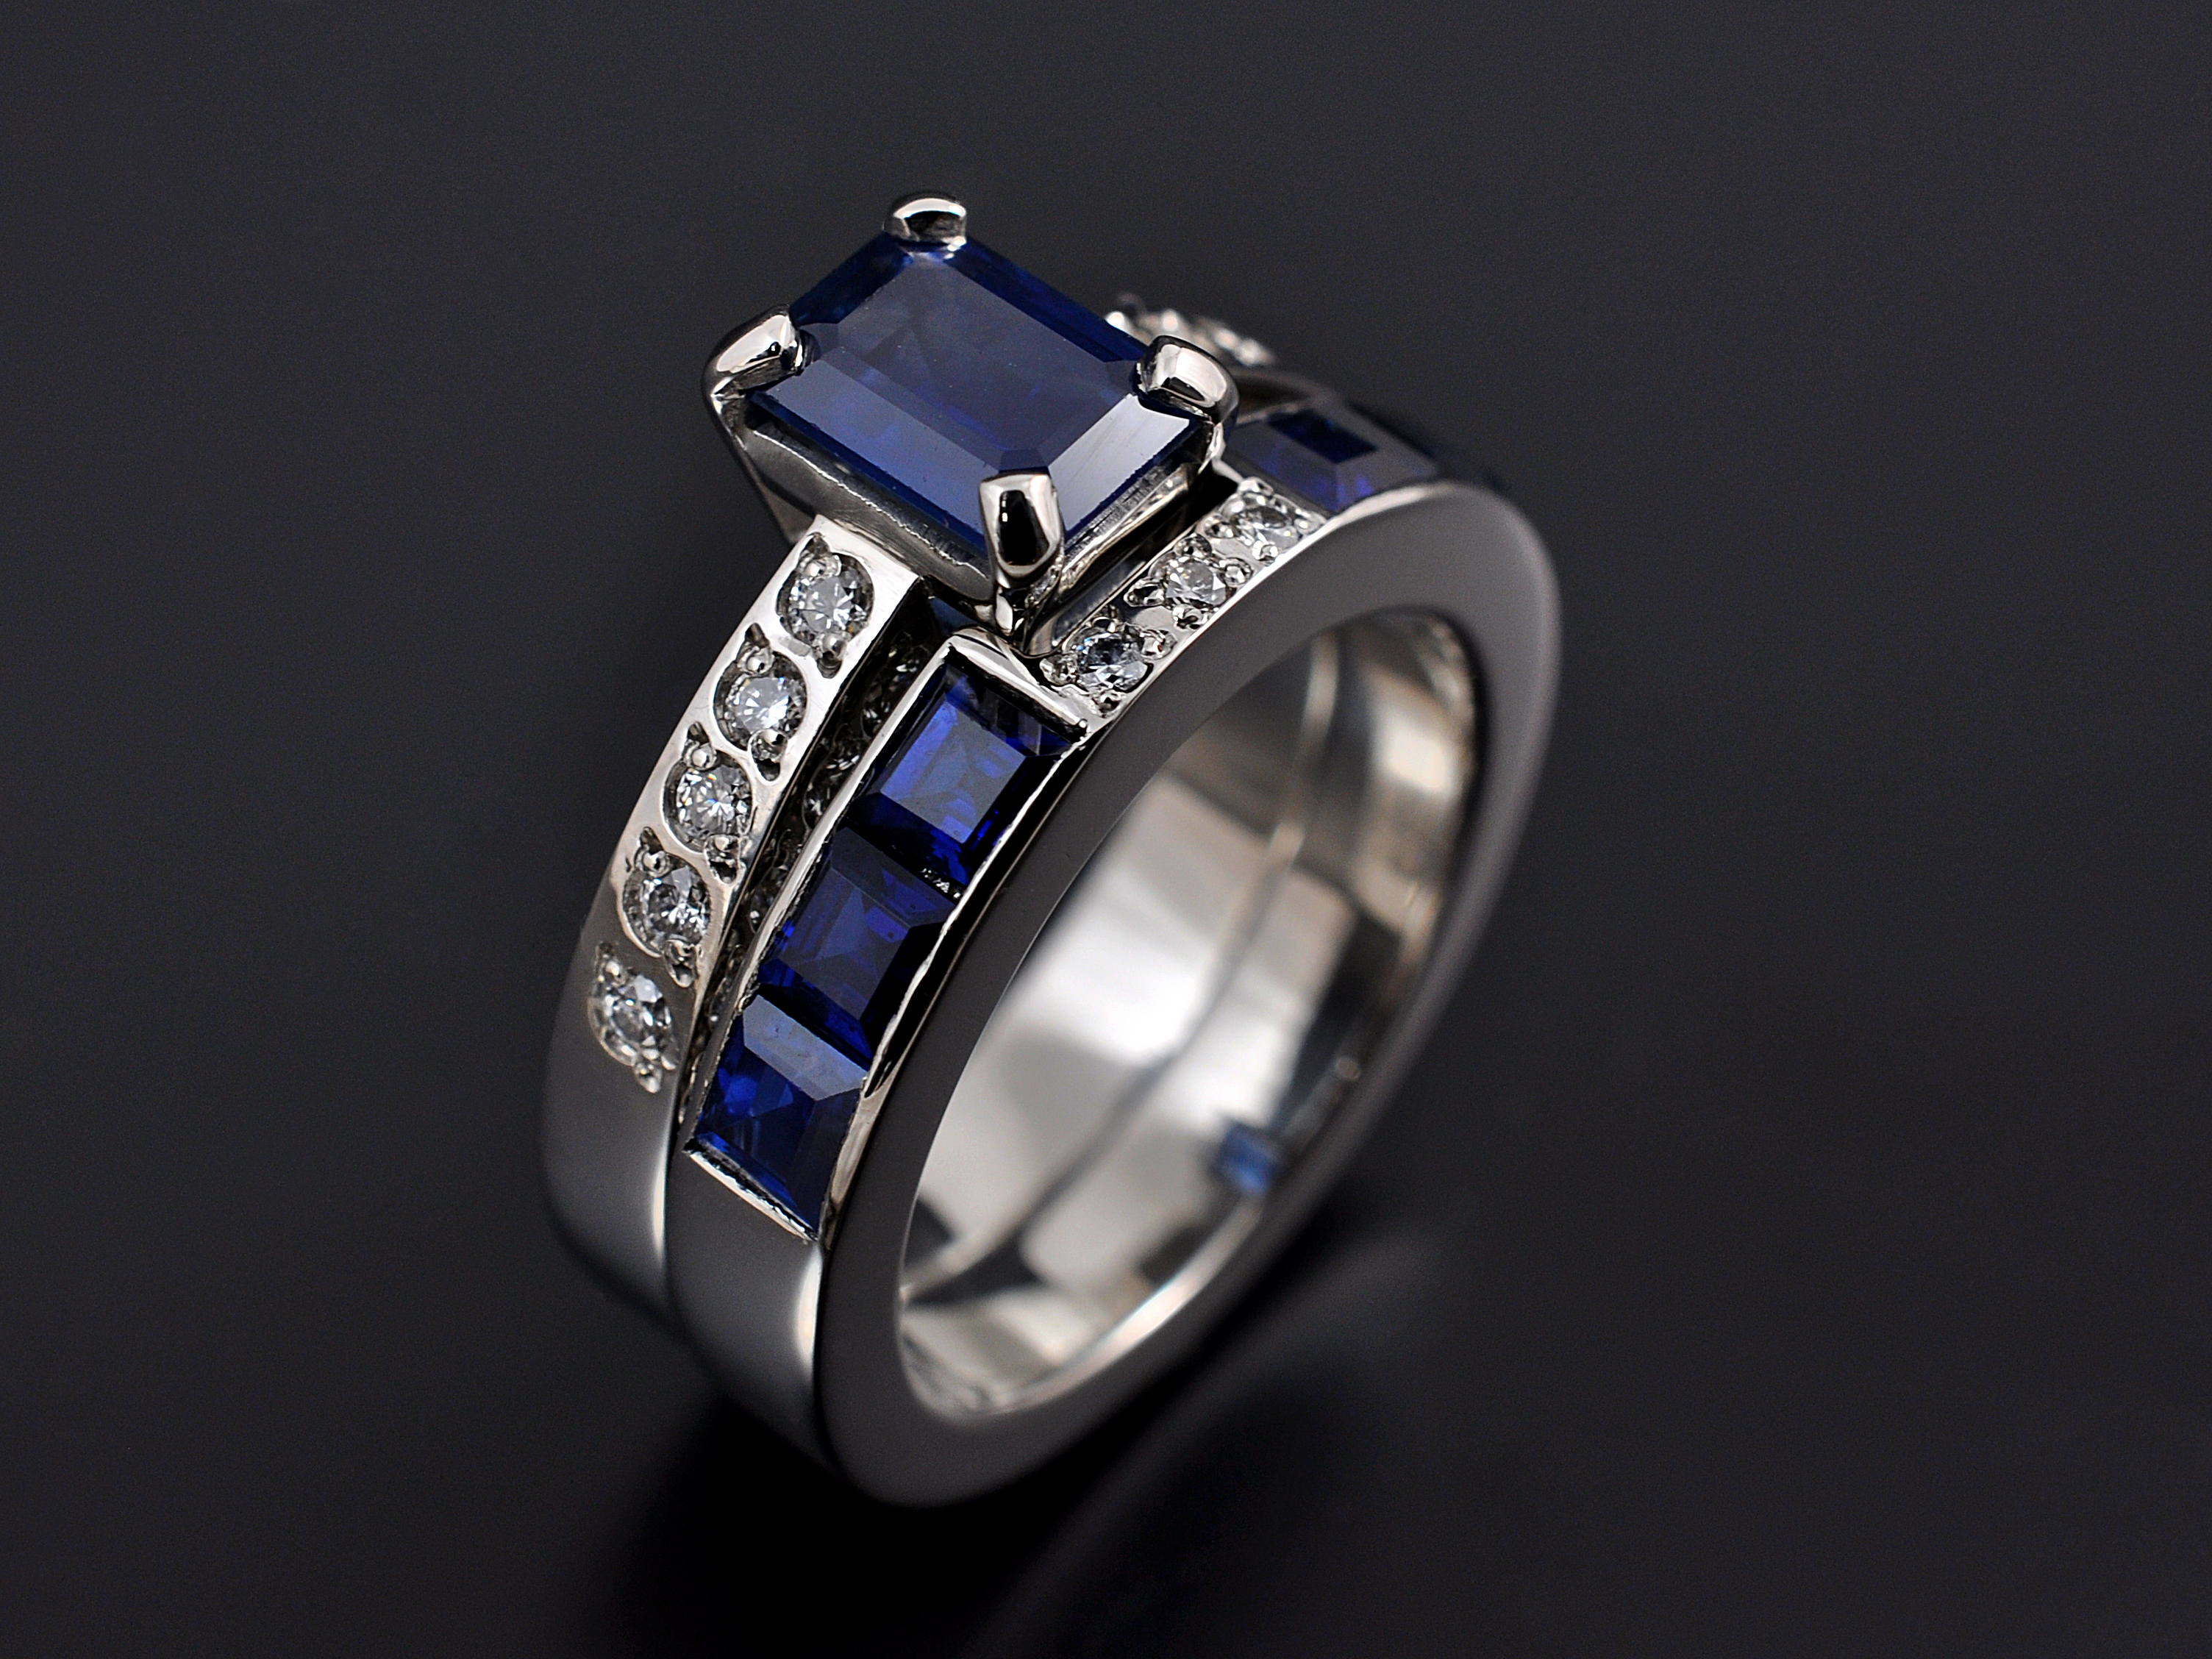 cut white from p order zirconia cubic made sapphire gold to stone shantasticjewelry and asscher blue or silver ring three quality sterling warm high